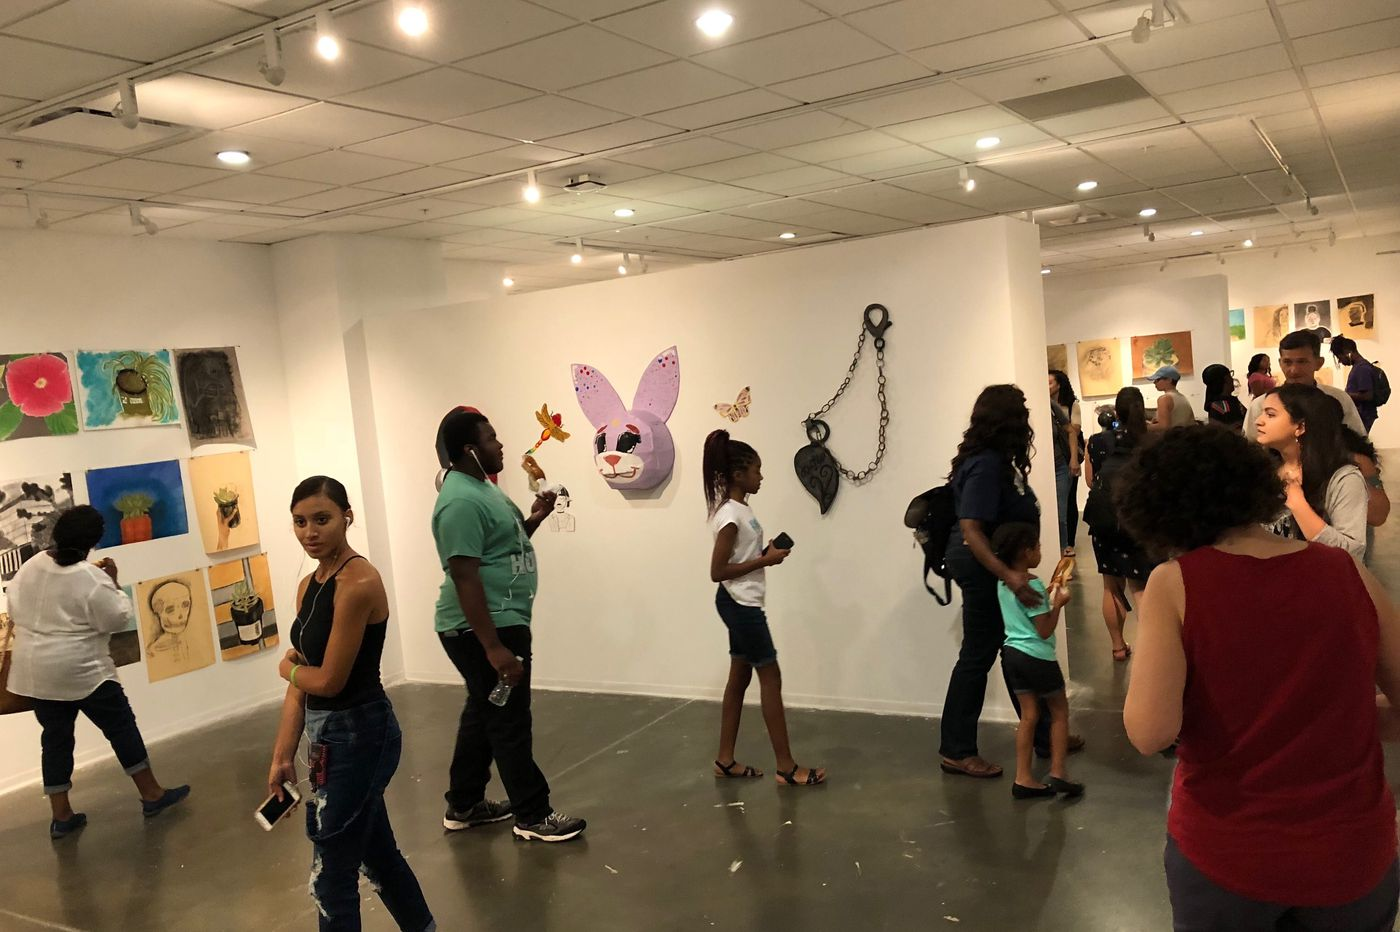 2 Tyler summer art programs sketch paths to new career options